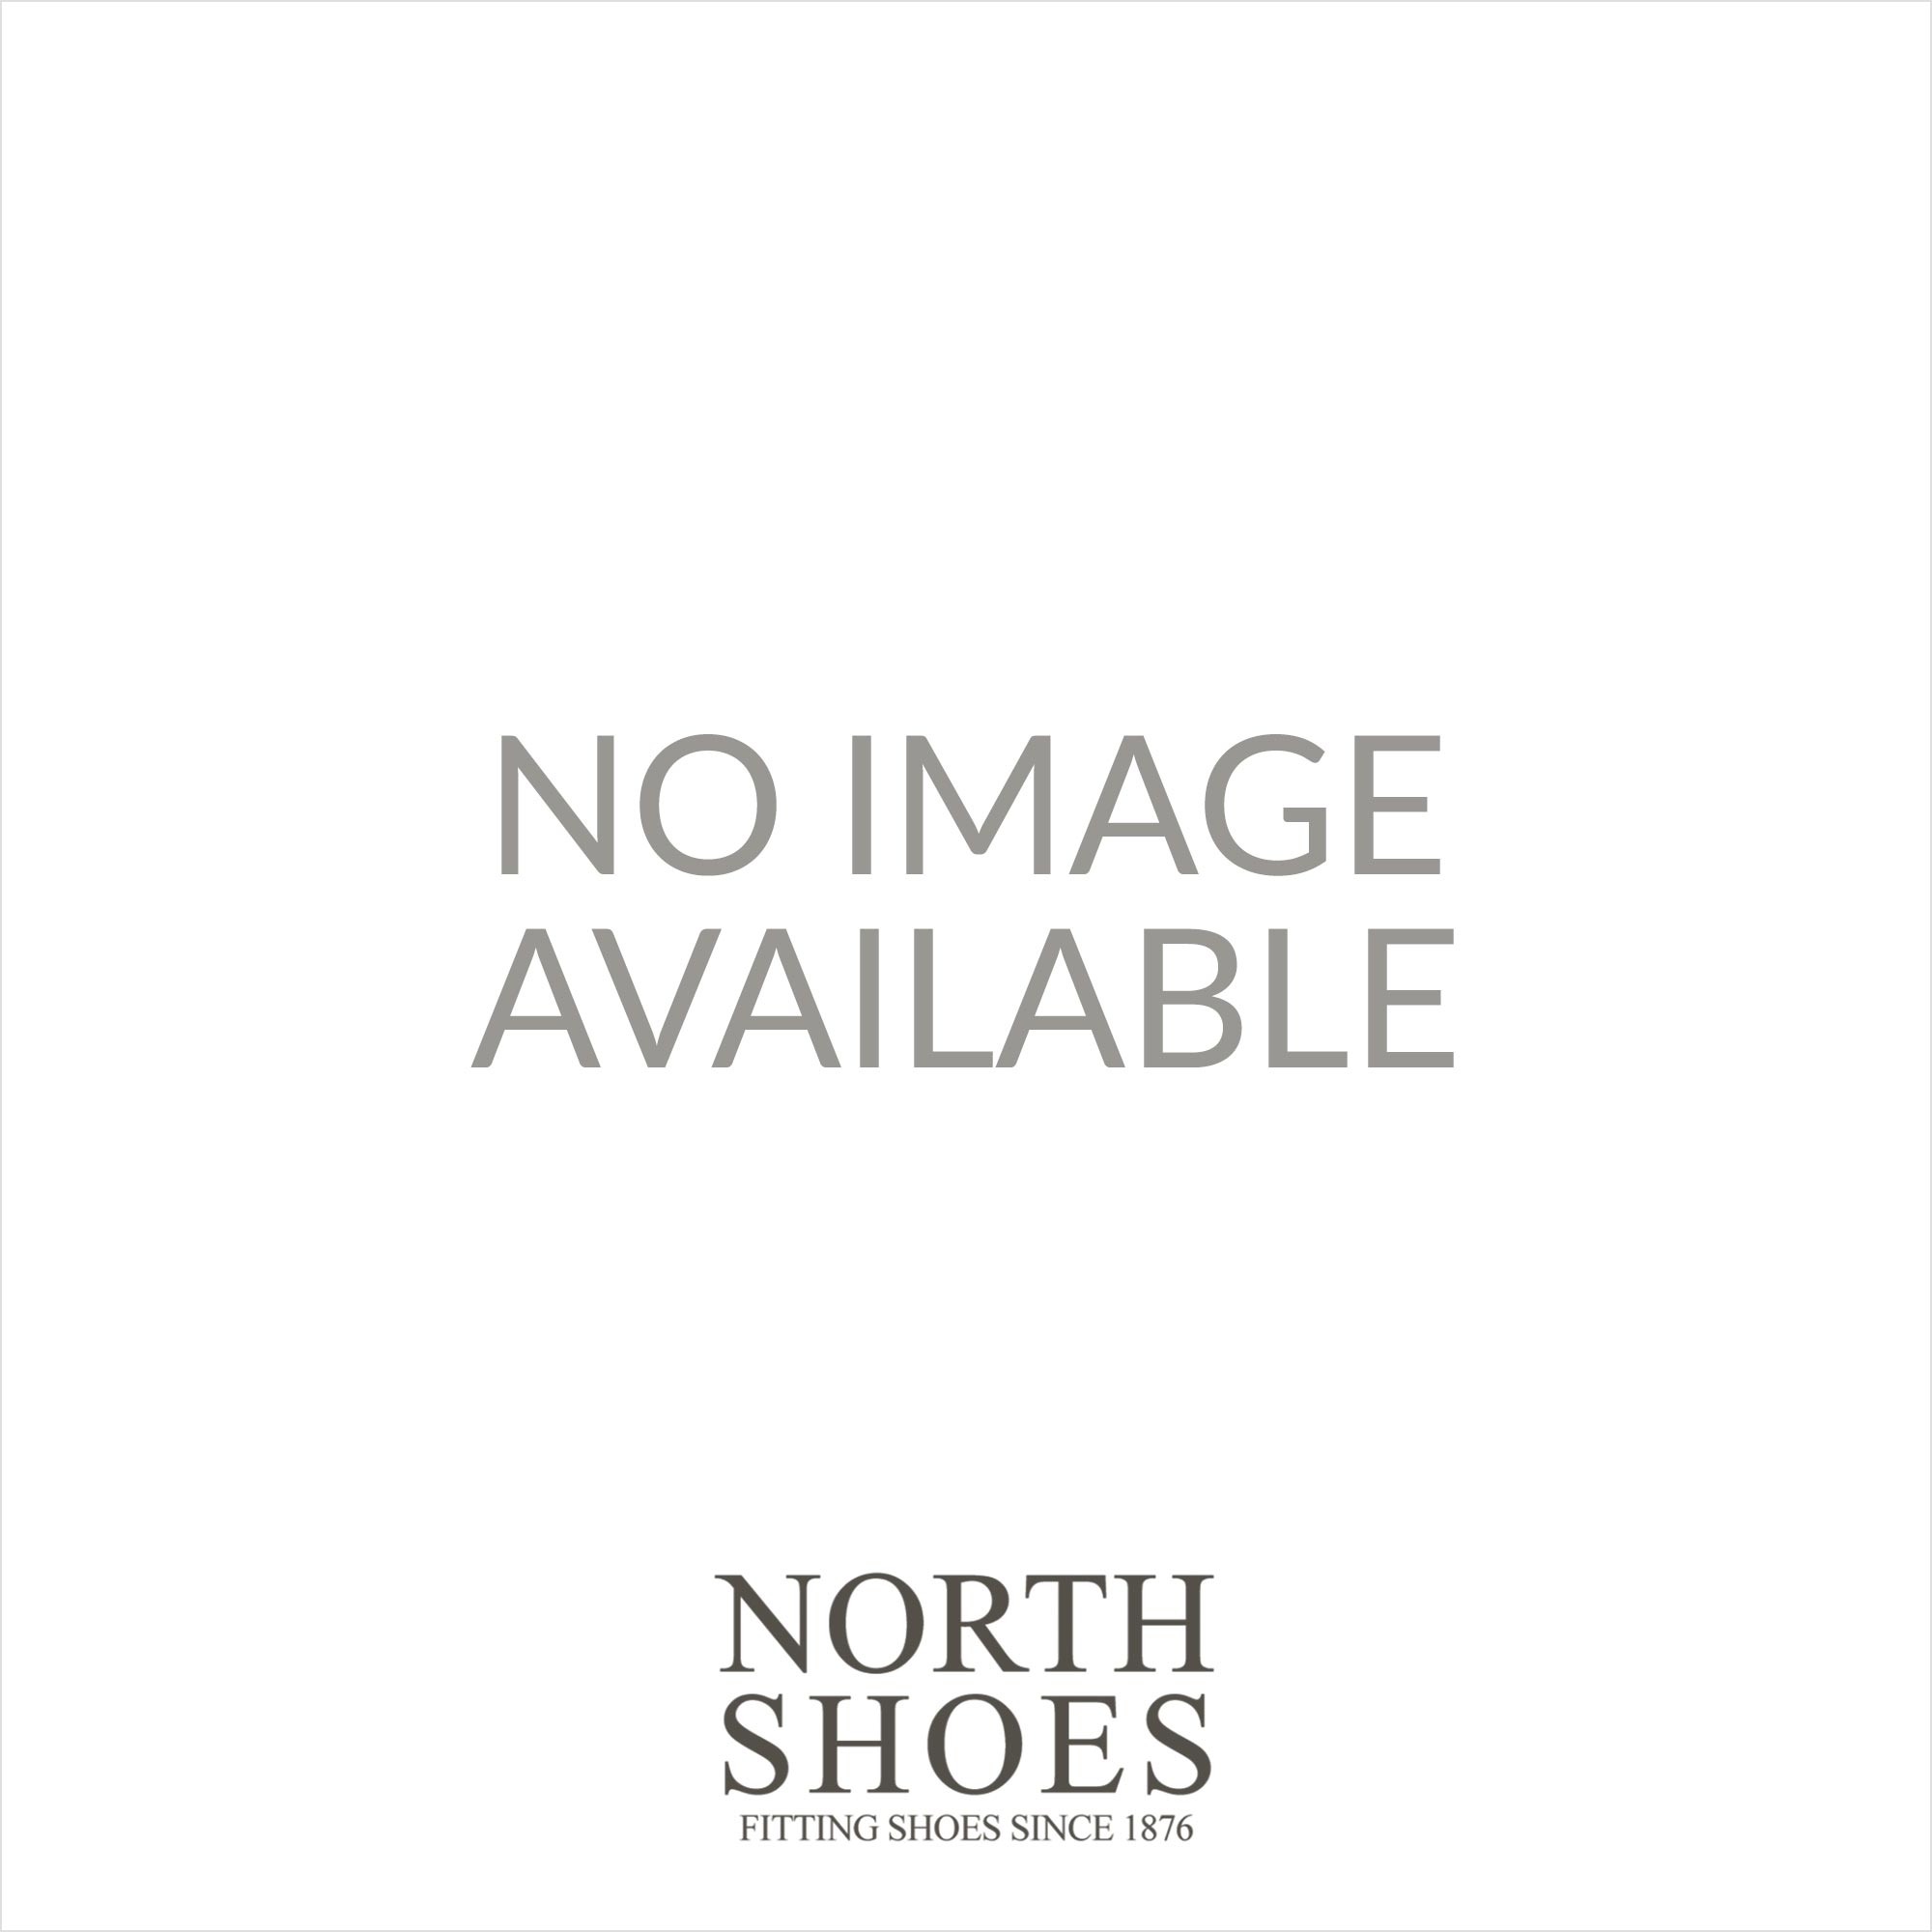 6c07f24a3a0 Toni Pons Norma Multi Coloured Striped Canvas Womens Espadrille Sandal -  Toni Pons from North Shoes UK